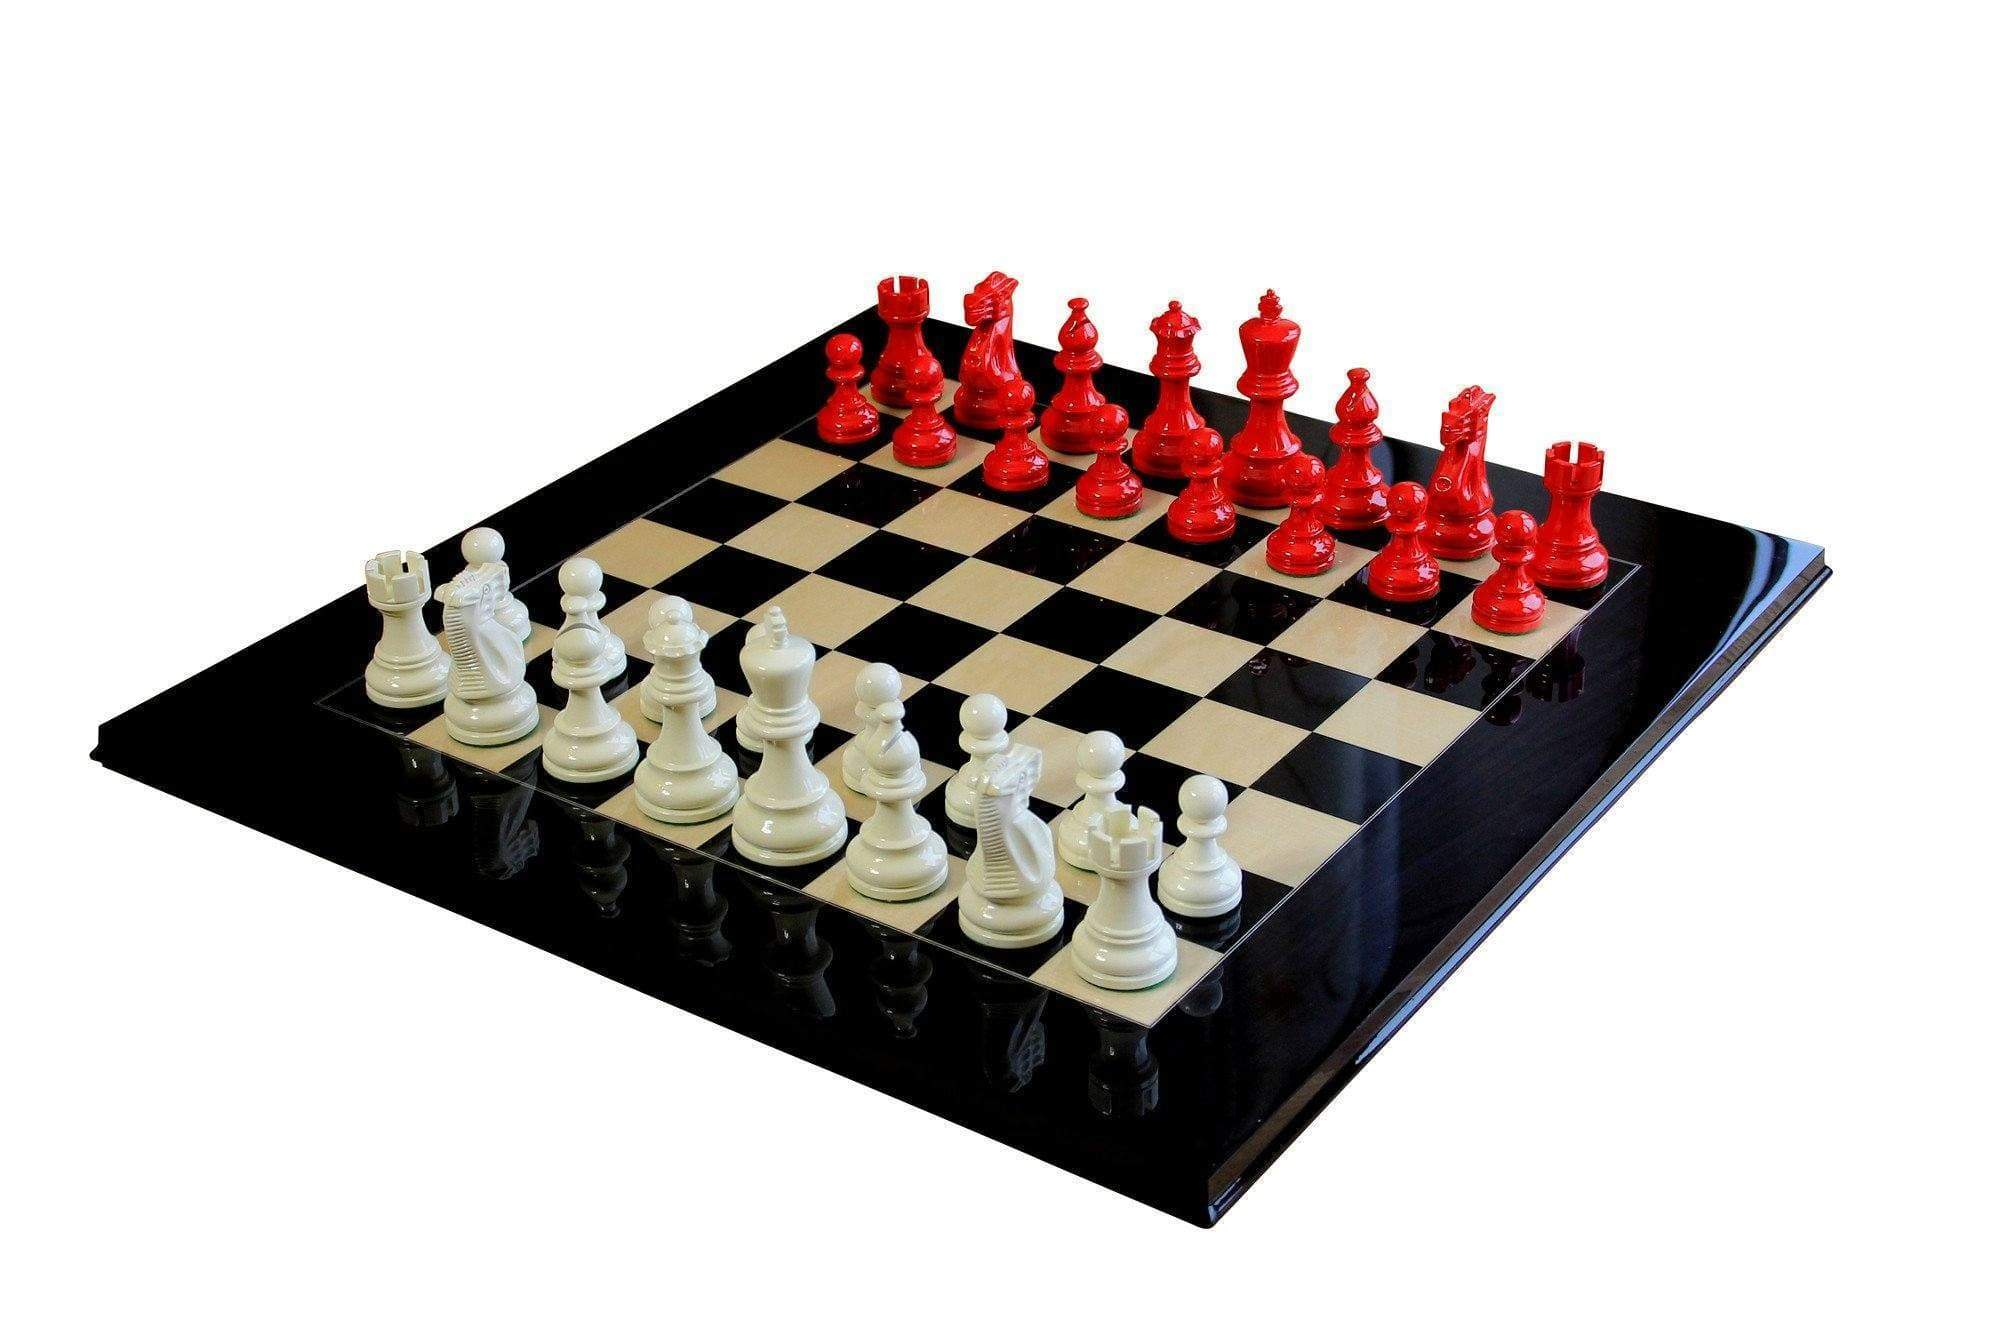 Atlantic Red Gloss & Cream Anegre Chess Set - Official Staunton™ Chess Company